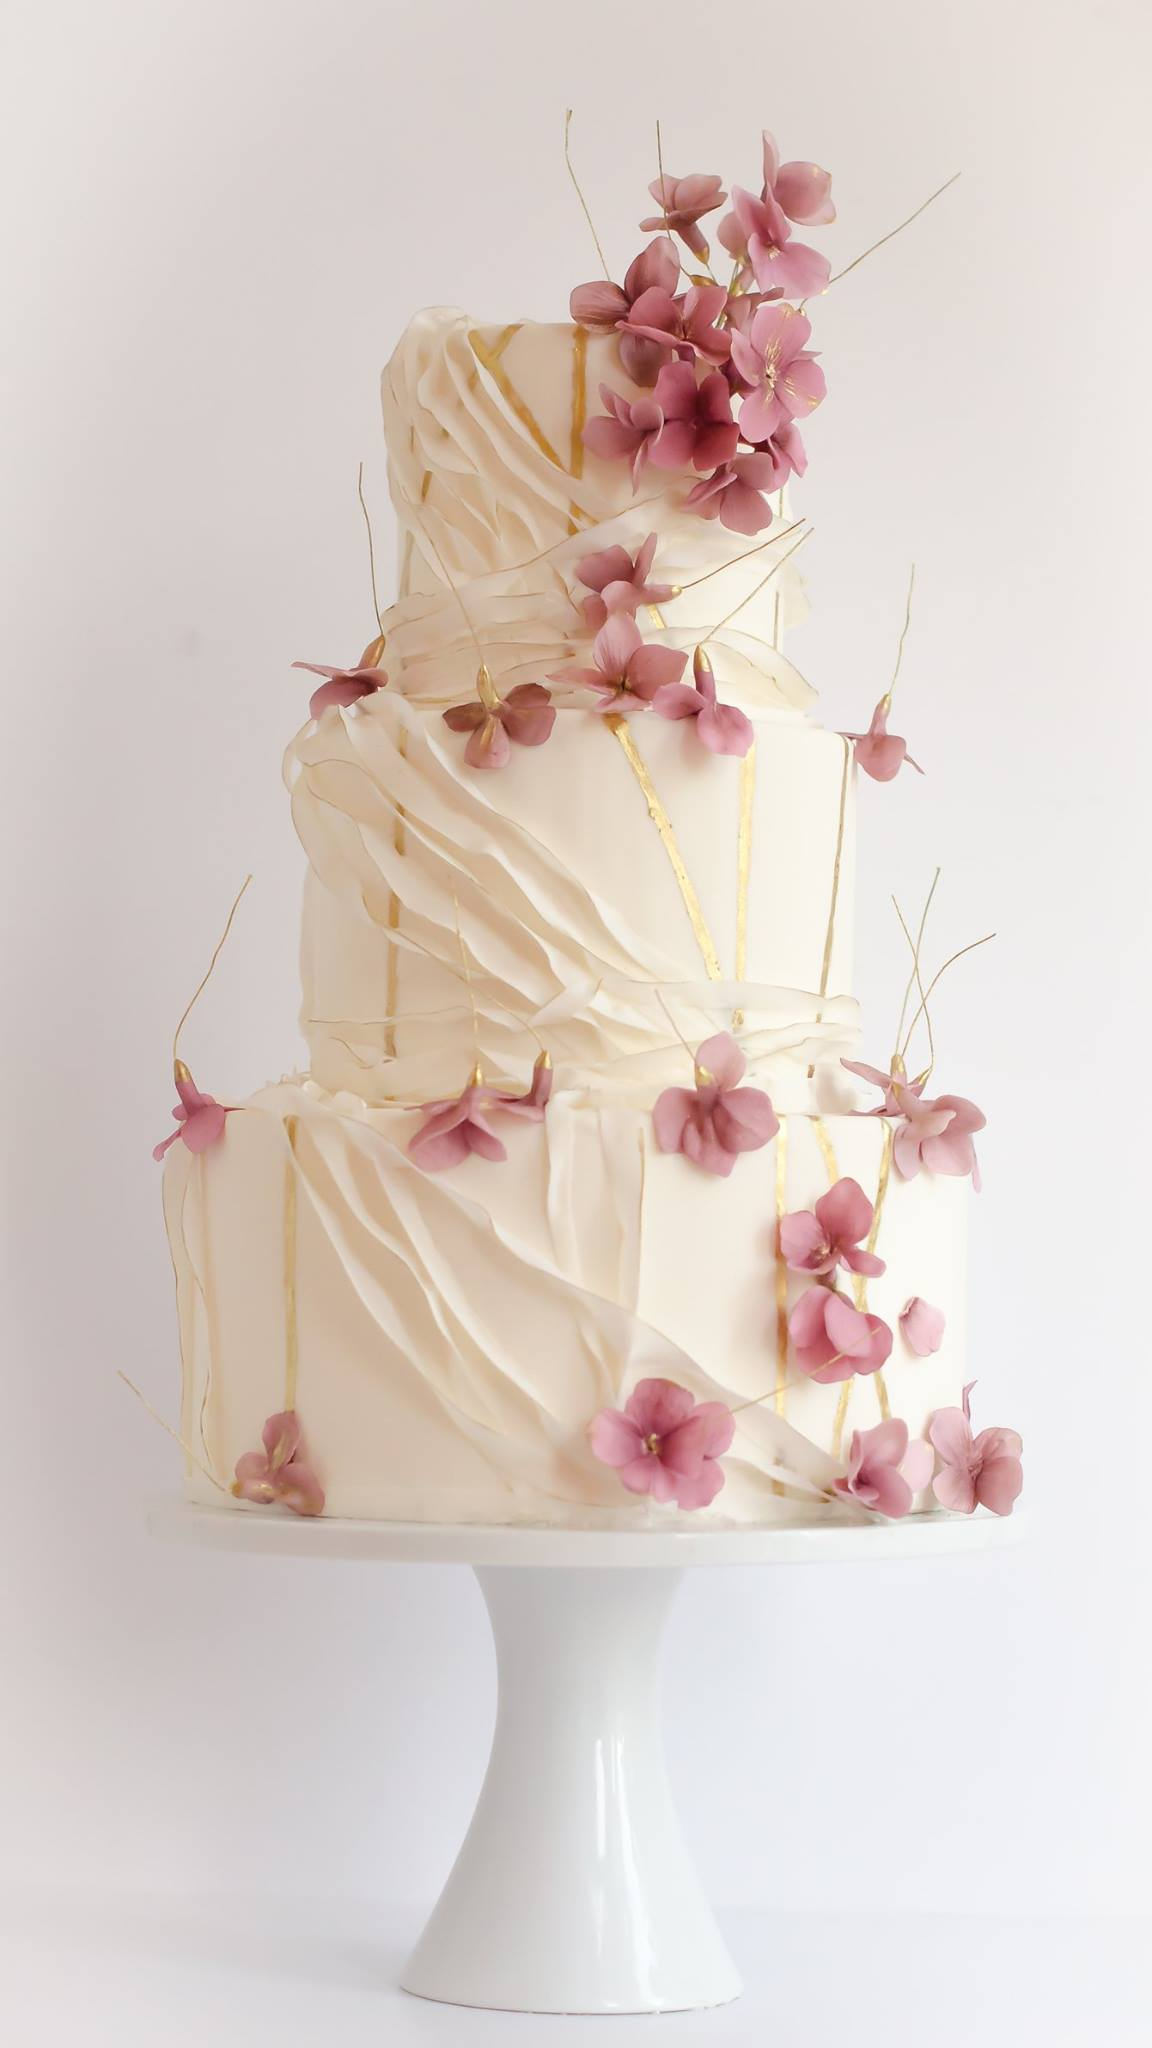 Chic Daily Wedding Cake Ideas (New!)